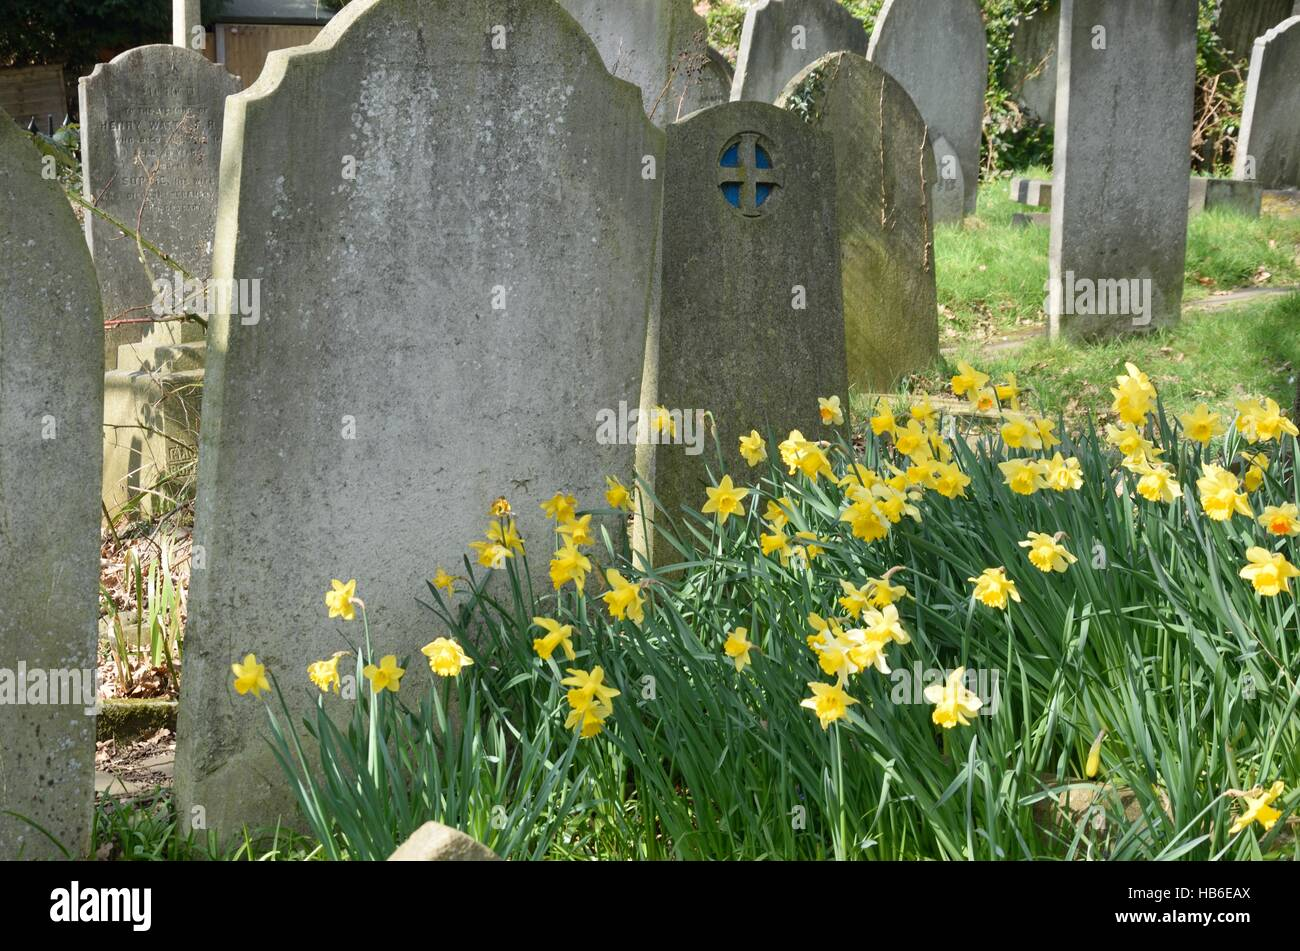 Graveyard with Daffodils - Stock Image